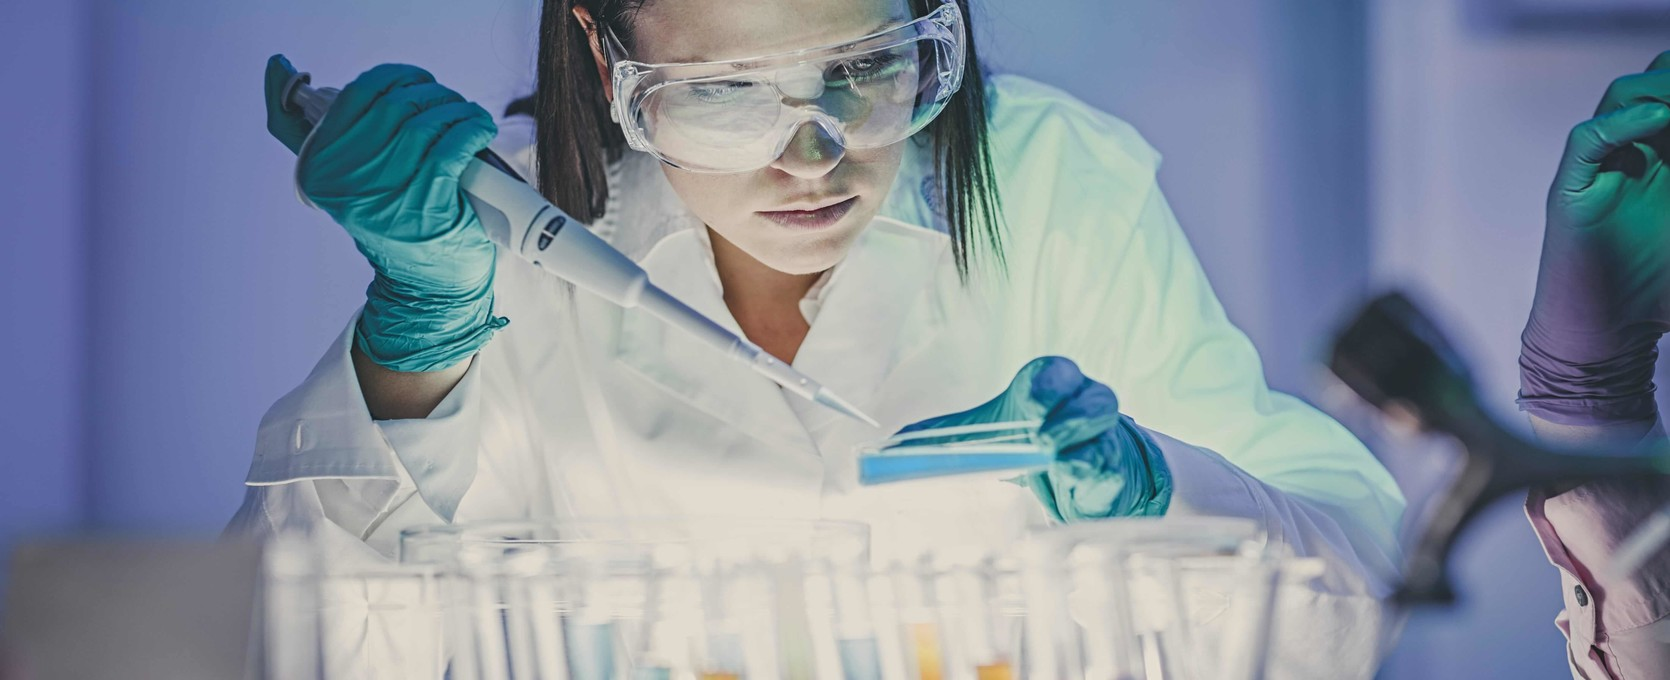 Scientist experimenting in the life sciences industry